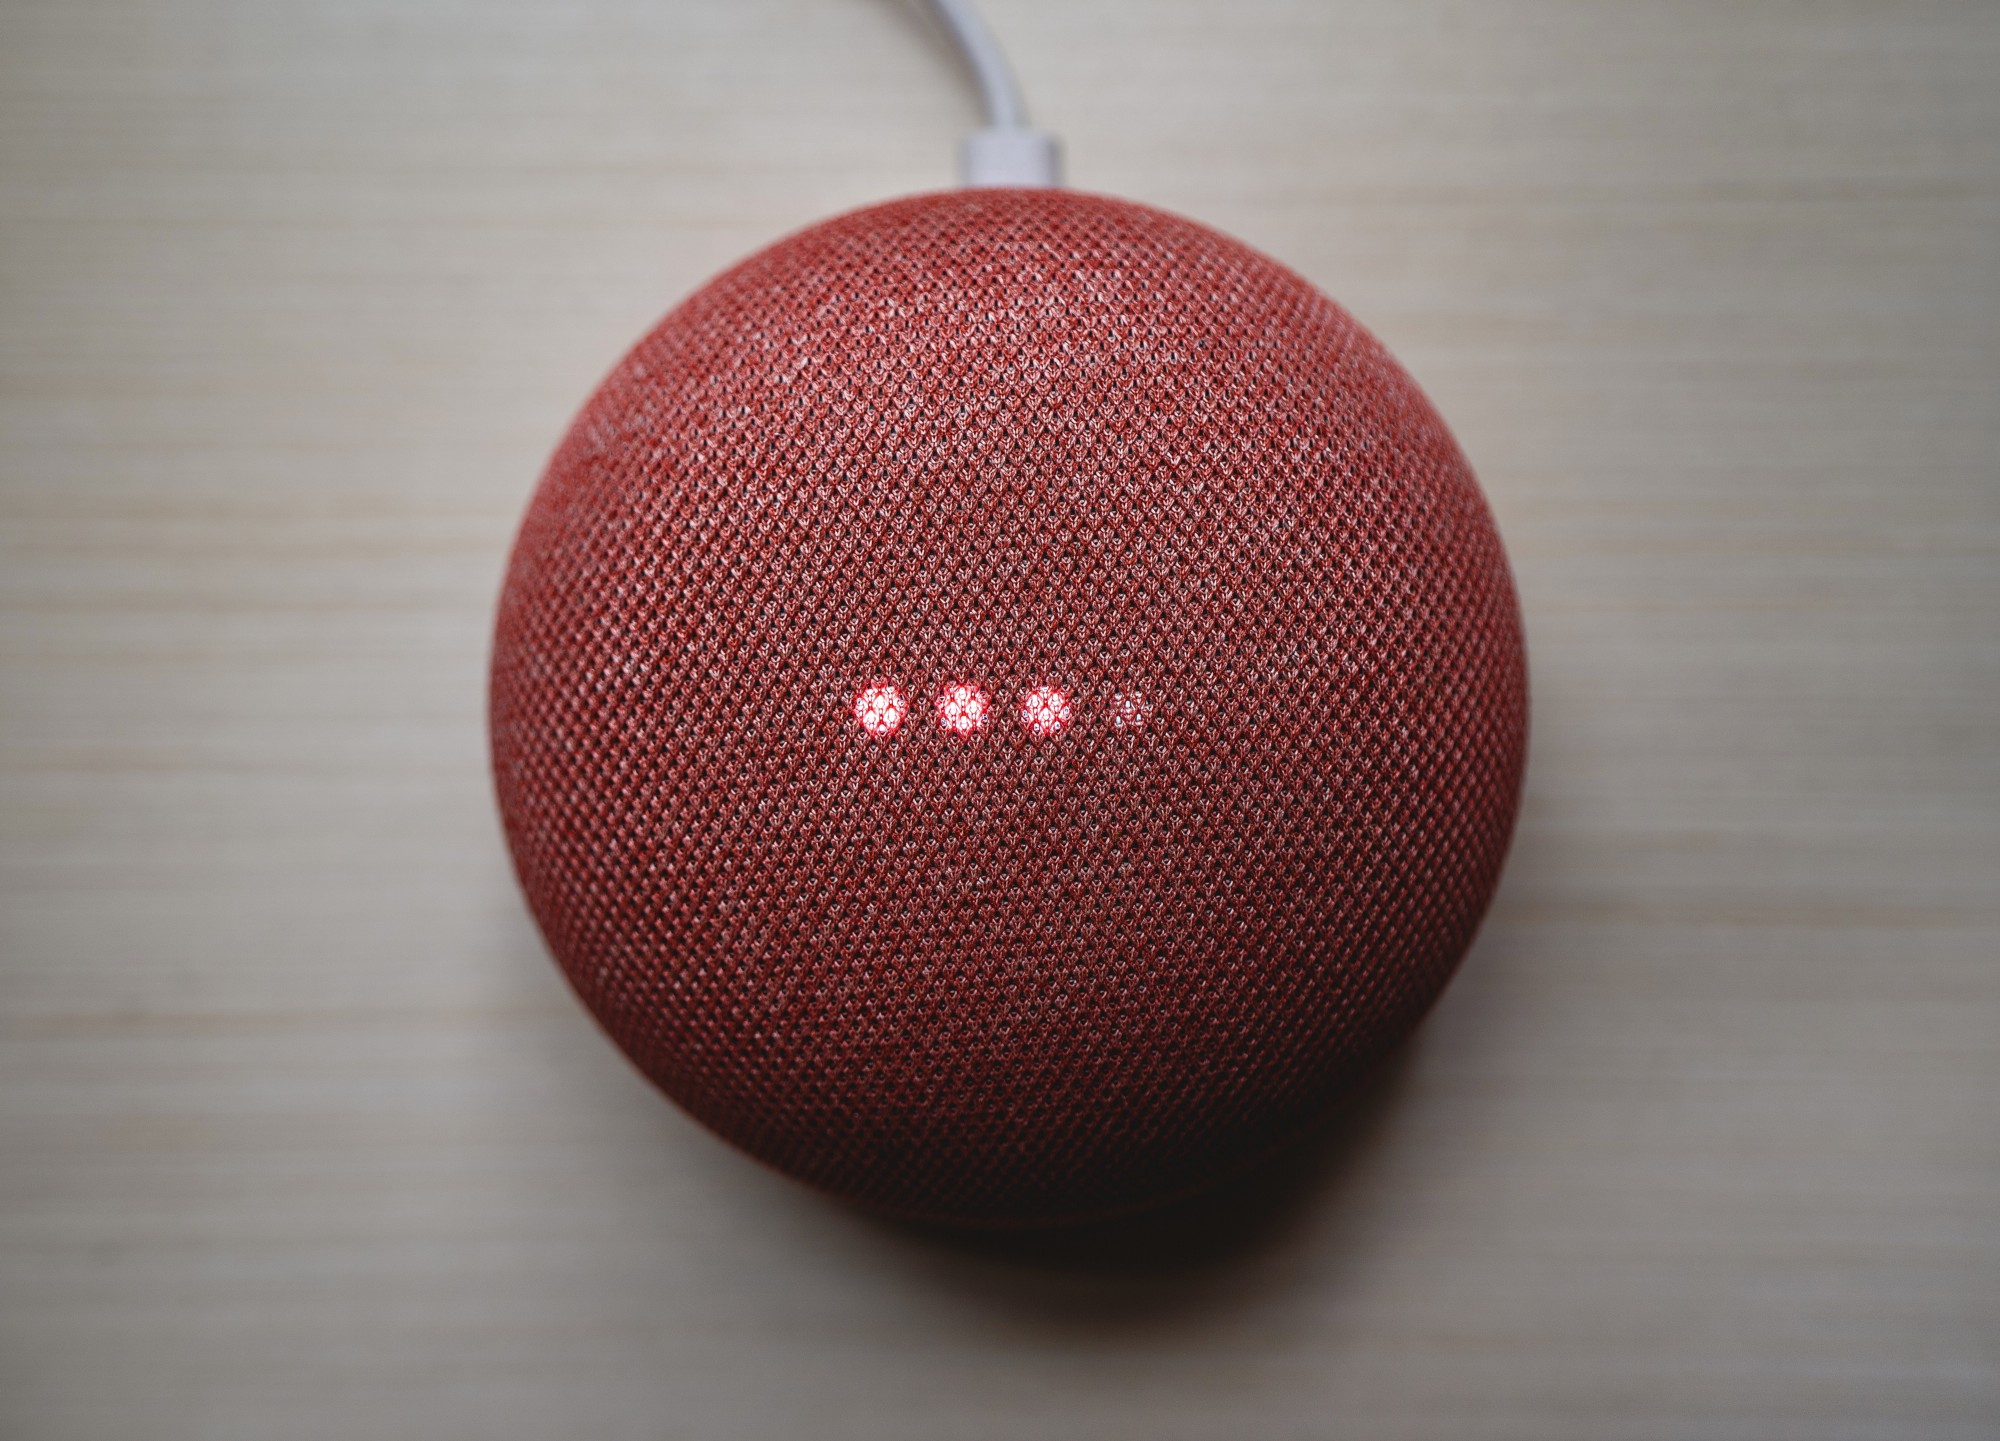 An Alexa-style digital device with three red dots lit up, as it prepares to communicate an answer.